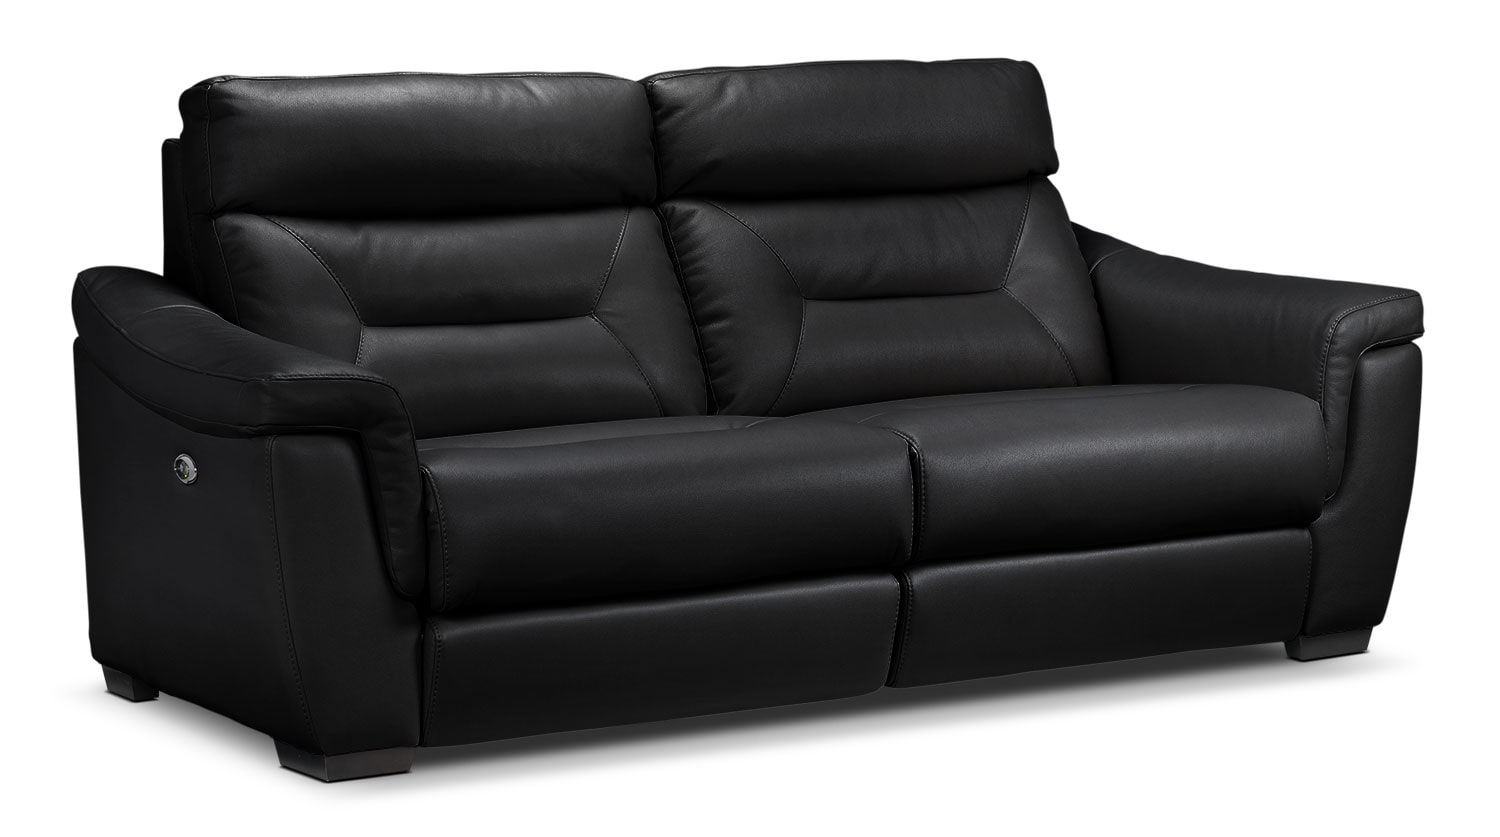 Ralston Power Reclining Sofa - Black